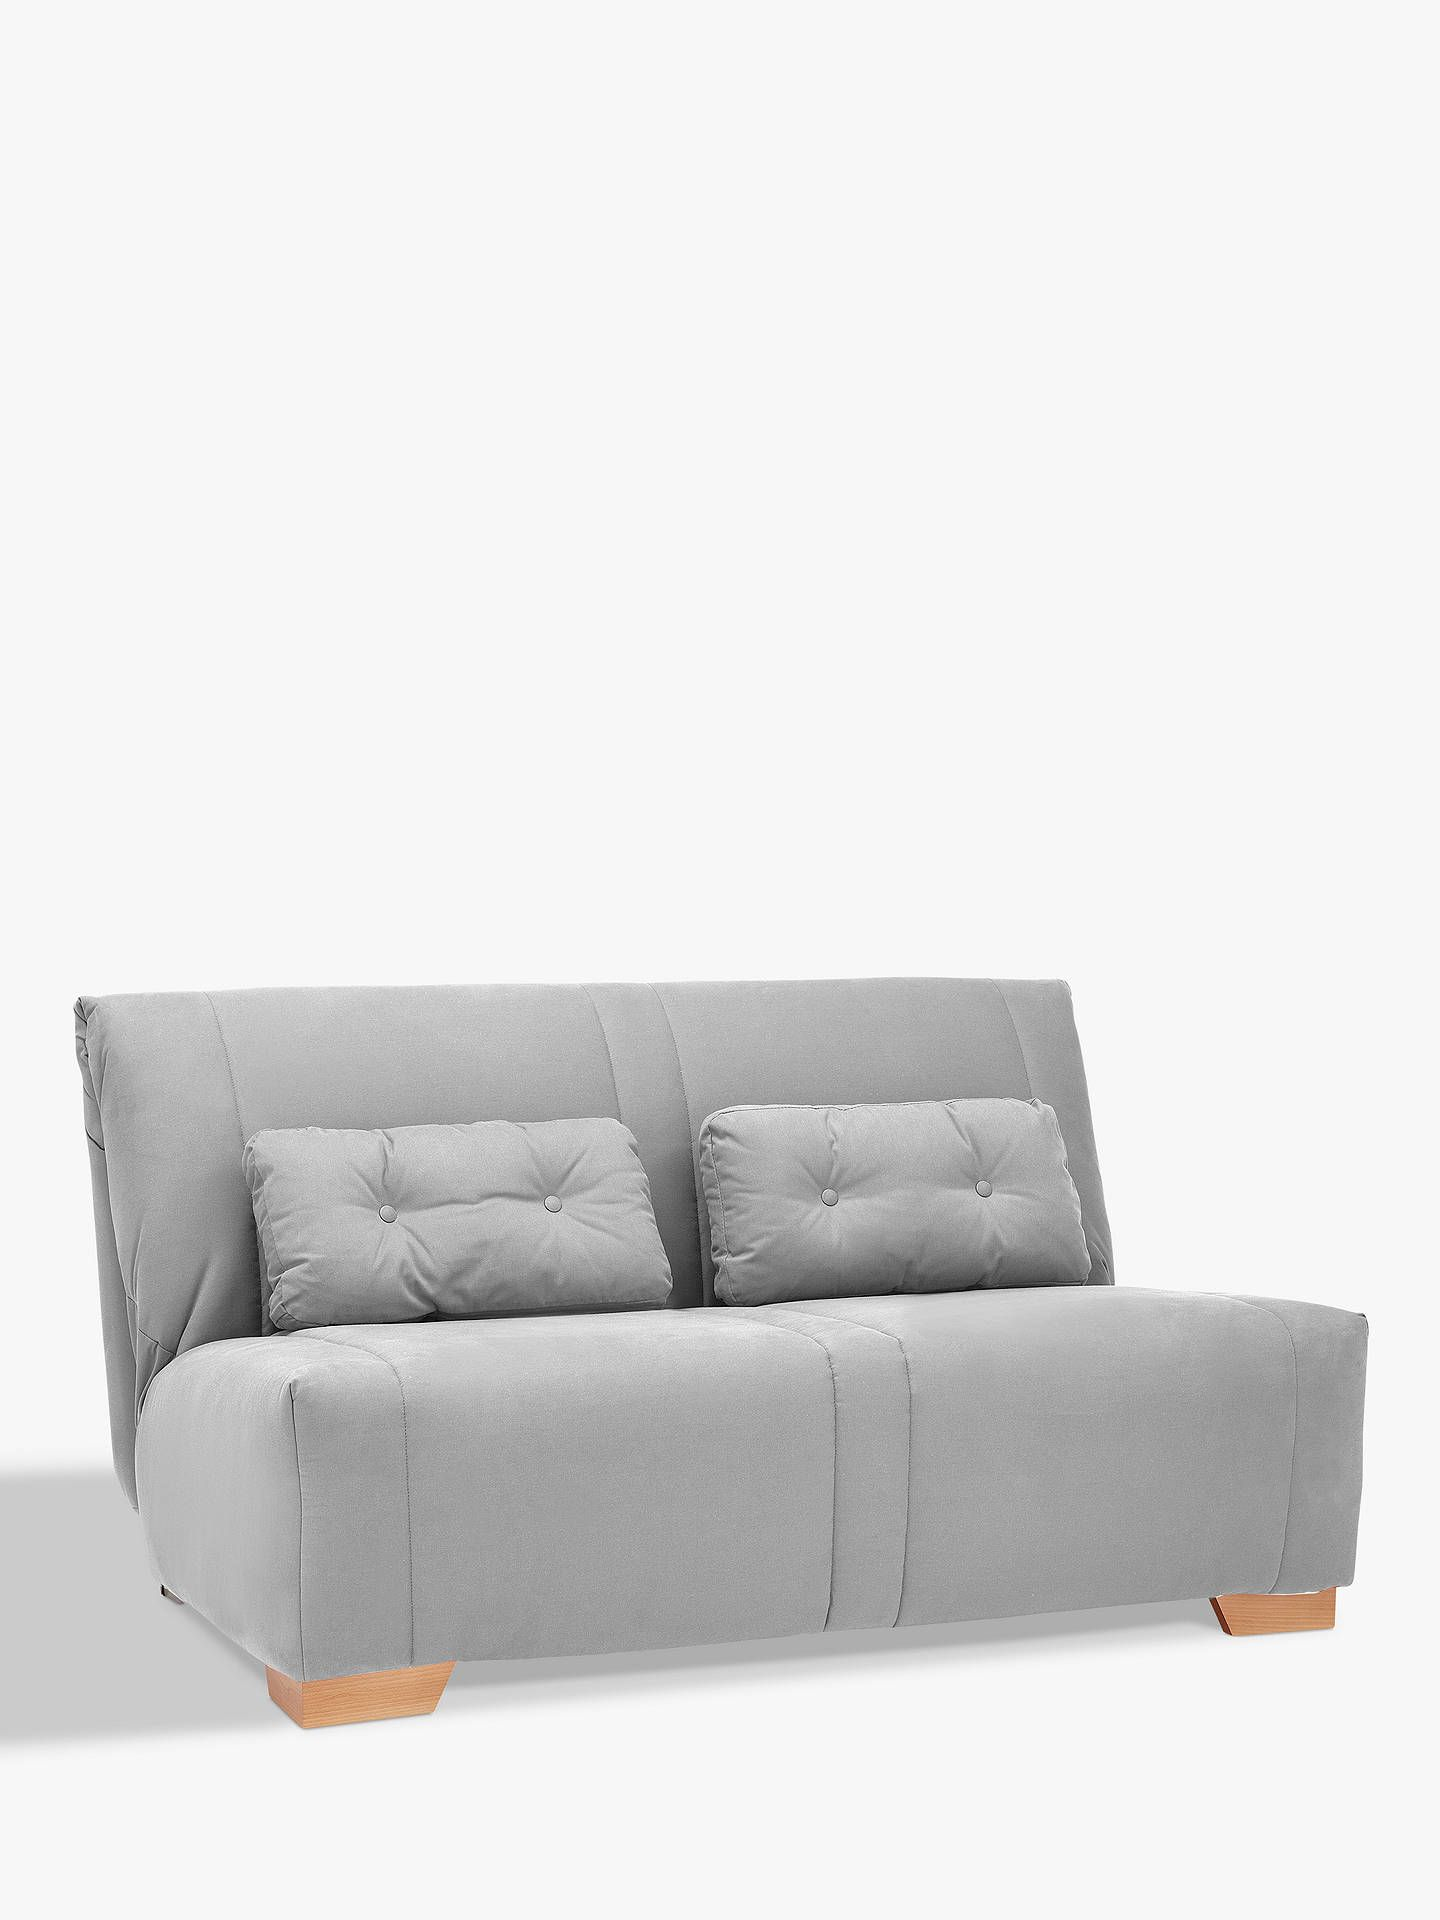 John Lewis Partners Strauss Small Sofa Bed Small Sofa Bed Small Sofa Large Sofa